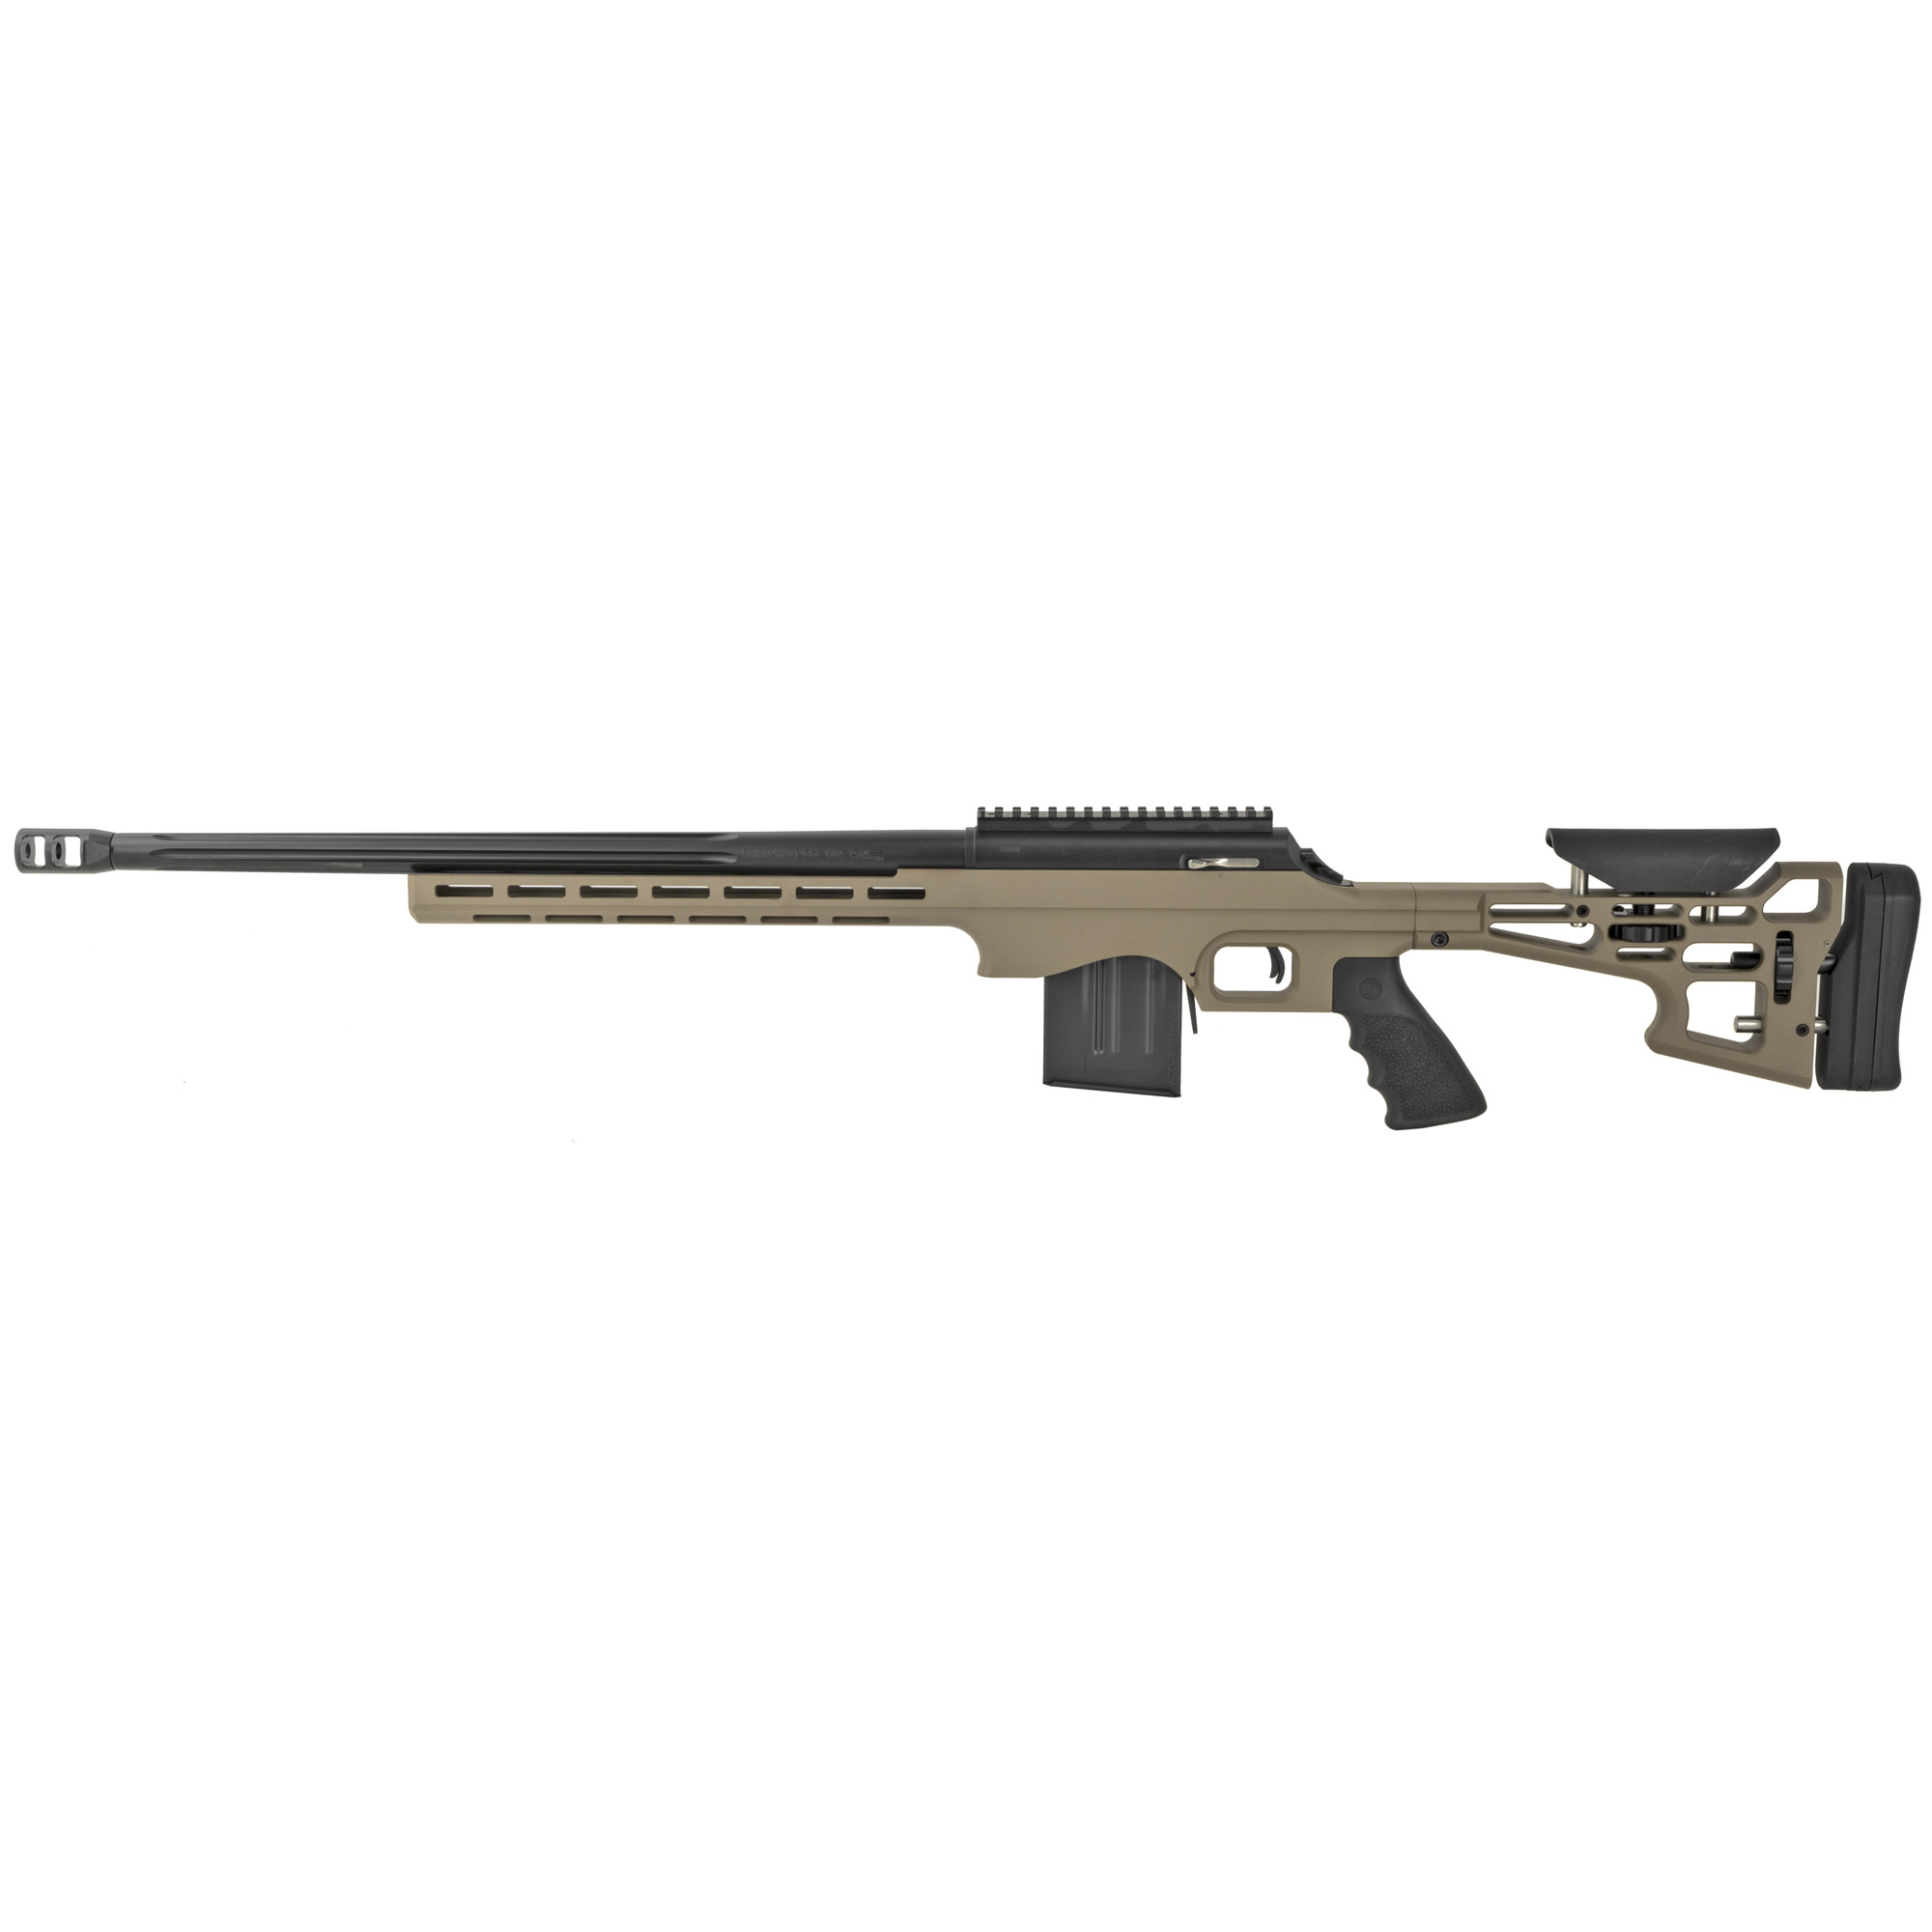 """The Performance Center T/C Long Range Rifle includes a 20 MOA picatinny-style rail and 5R rifled"""" fluted barrel for enhanced accuracy. The rifle features a threaded barrel with muzzle brake"""" and a Performance Center trigger that's adjustable from 2.5 to 3.5 pounds for precise tuning."""